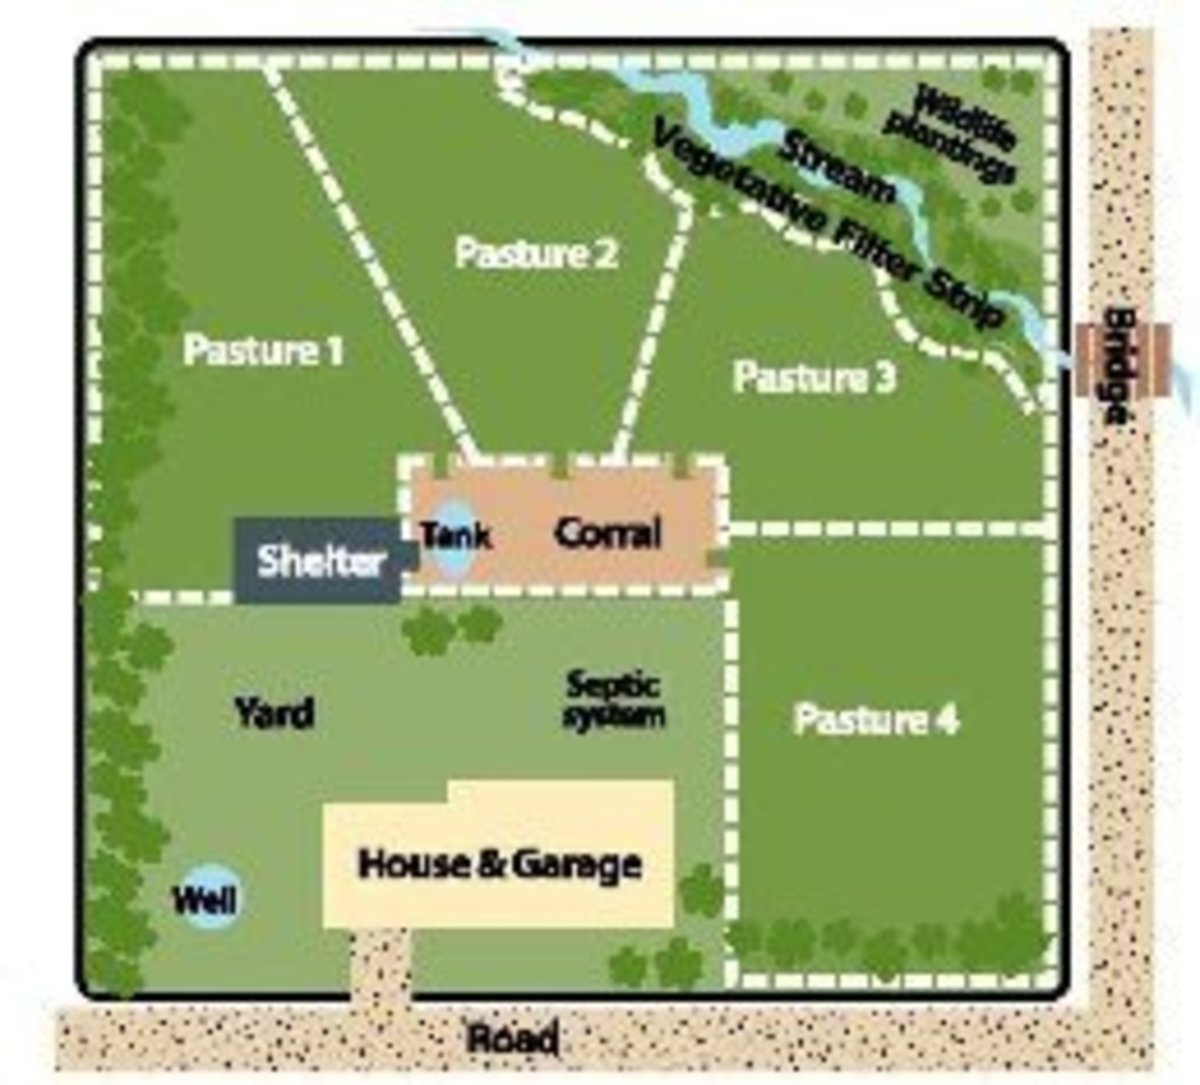 Here is a simple rotational pasture plan that could be implemented easily for chickens if you swapped out the corral with a coop.